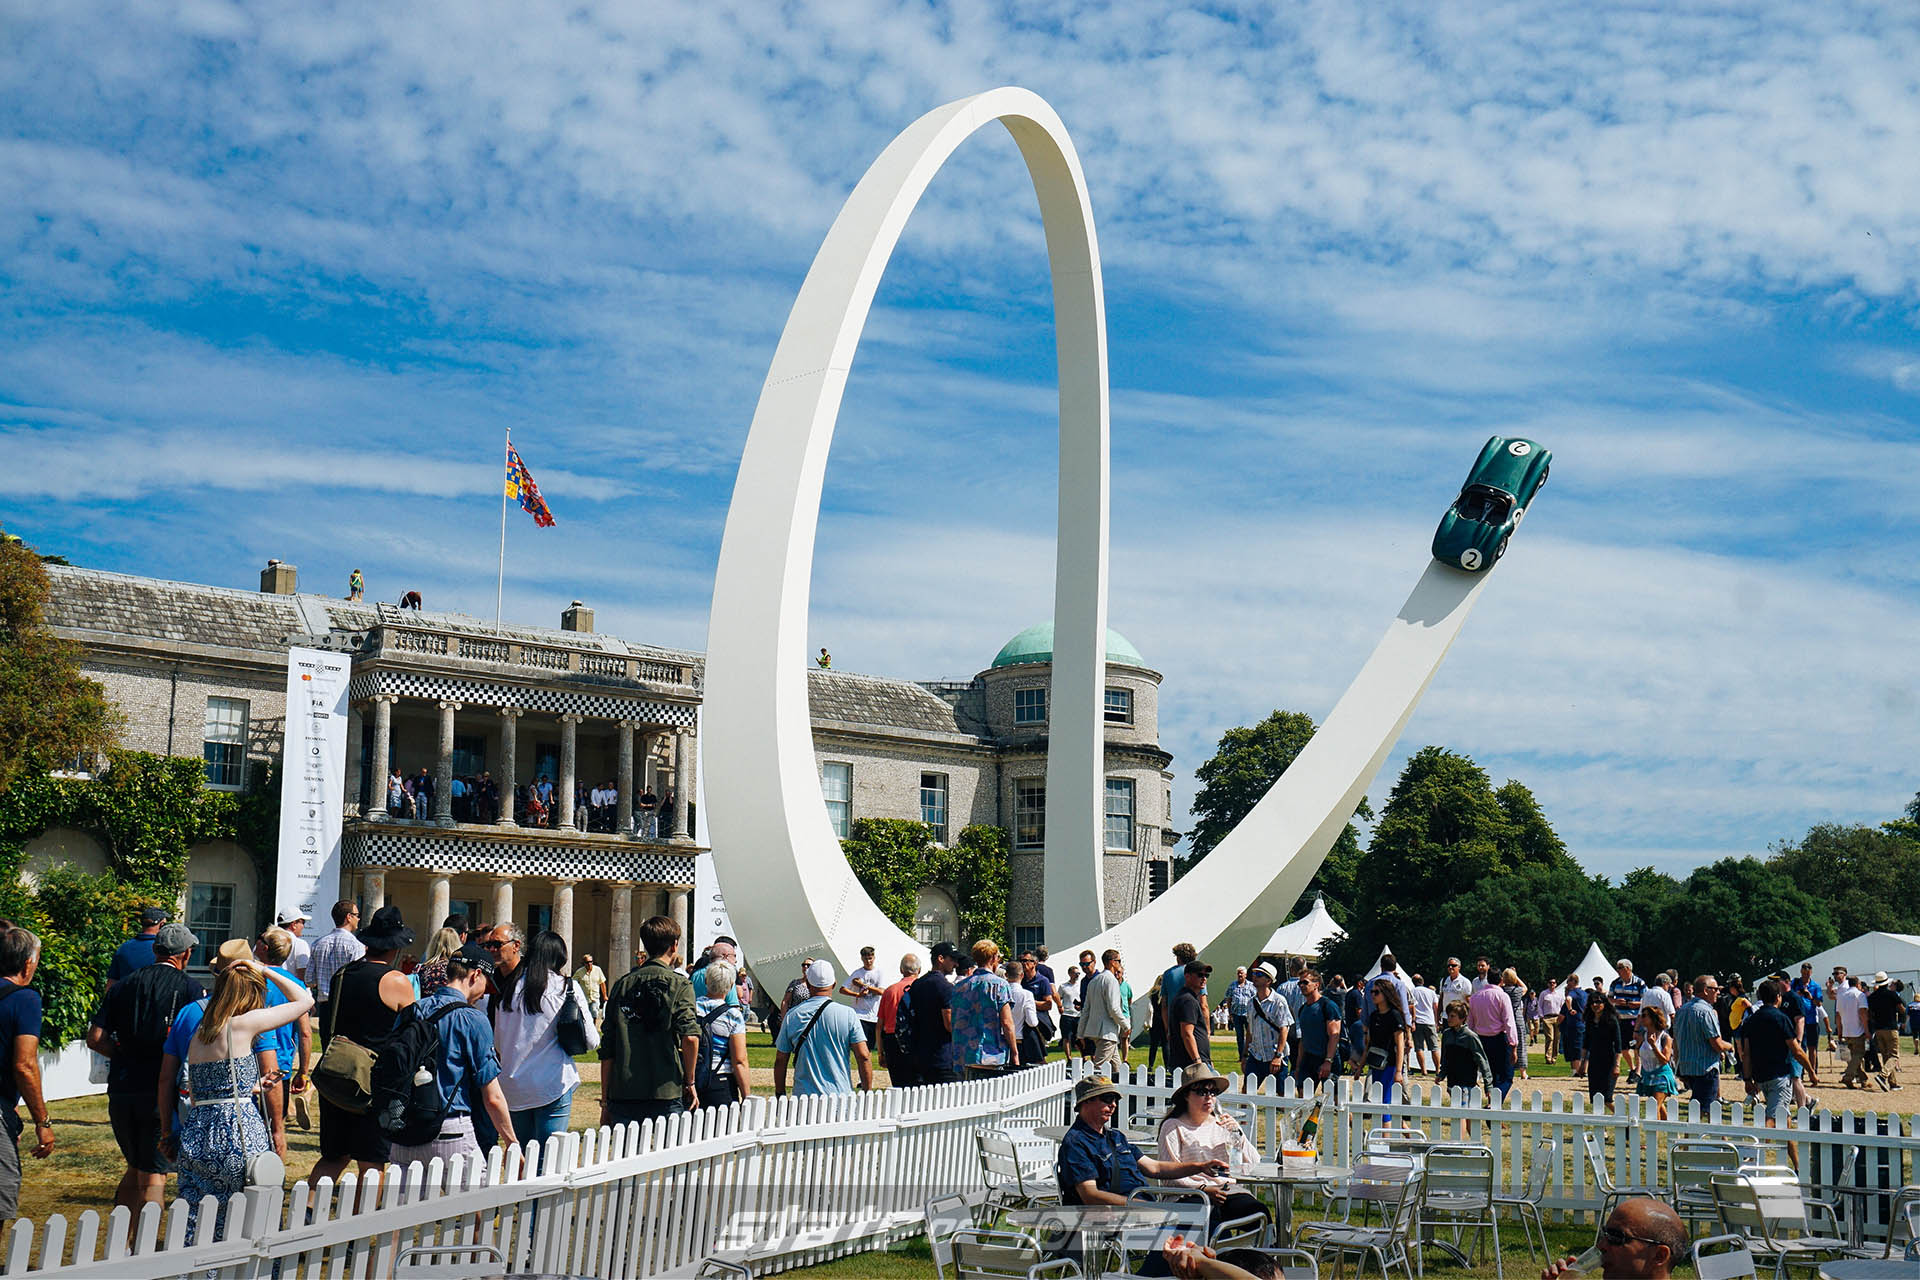 Crowd at goodwood festival of speed